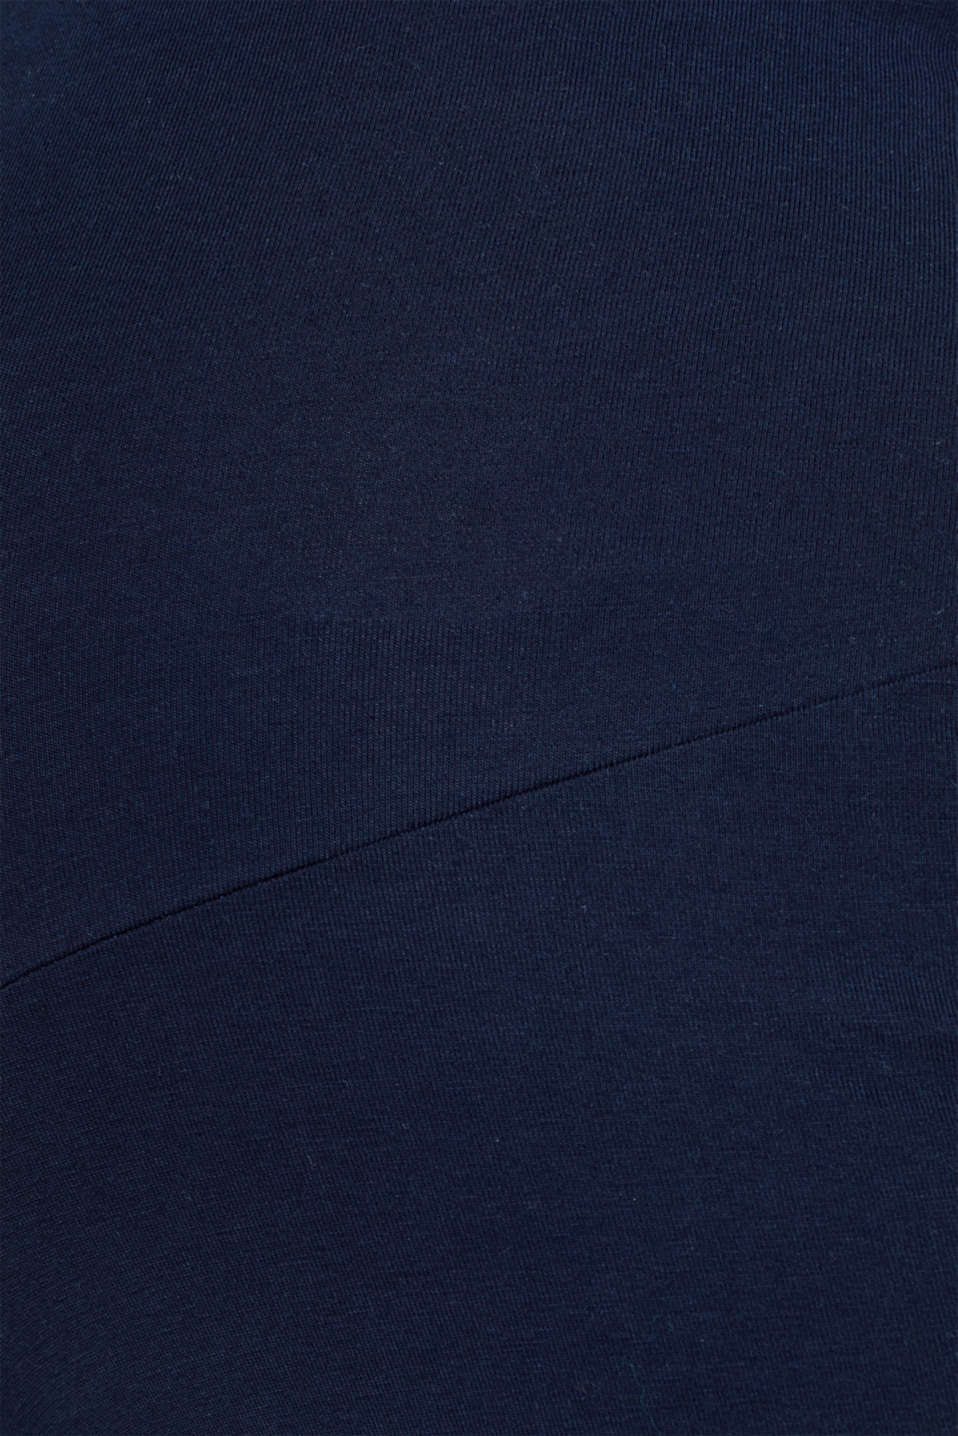 Stretch jersey trousers with an over-bump waistband, LCNIGHT BLUE, detail image number 3